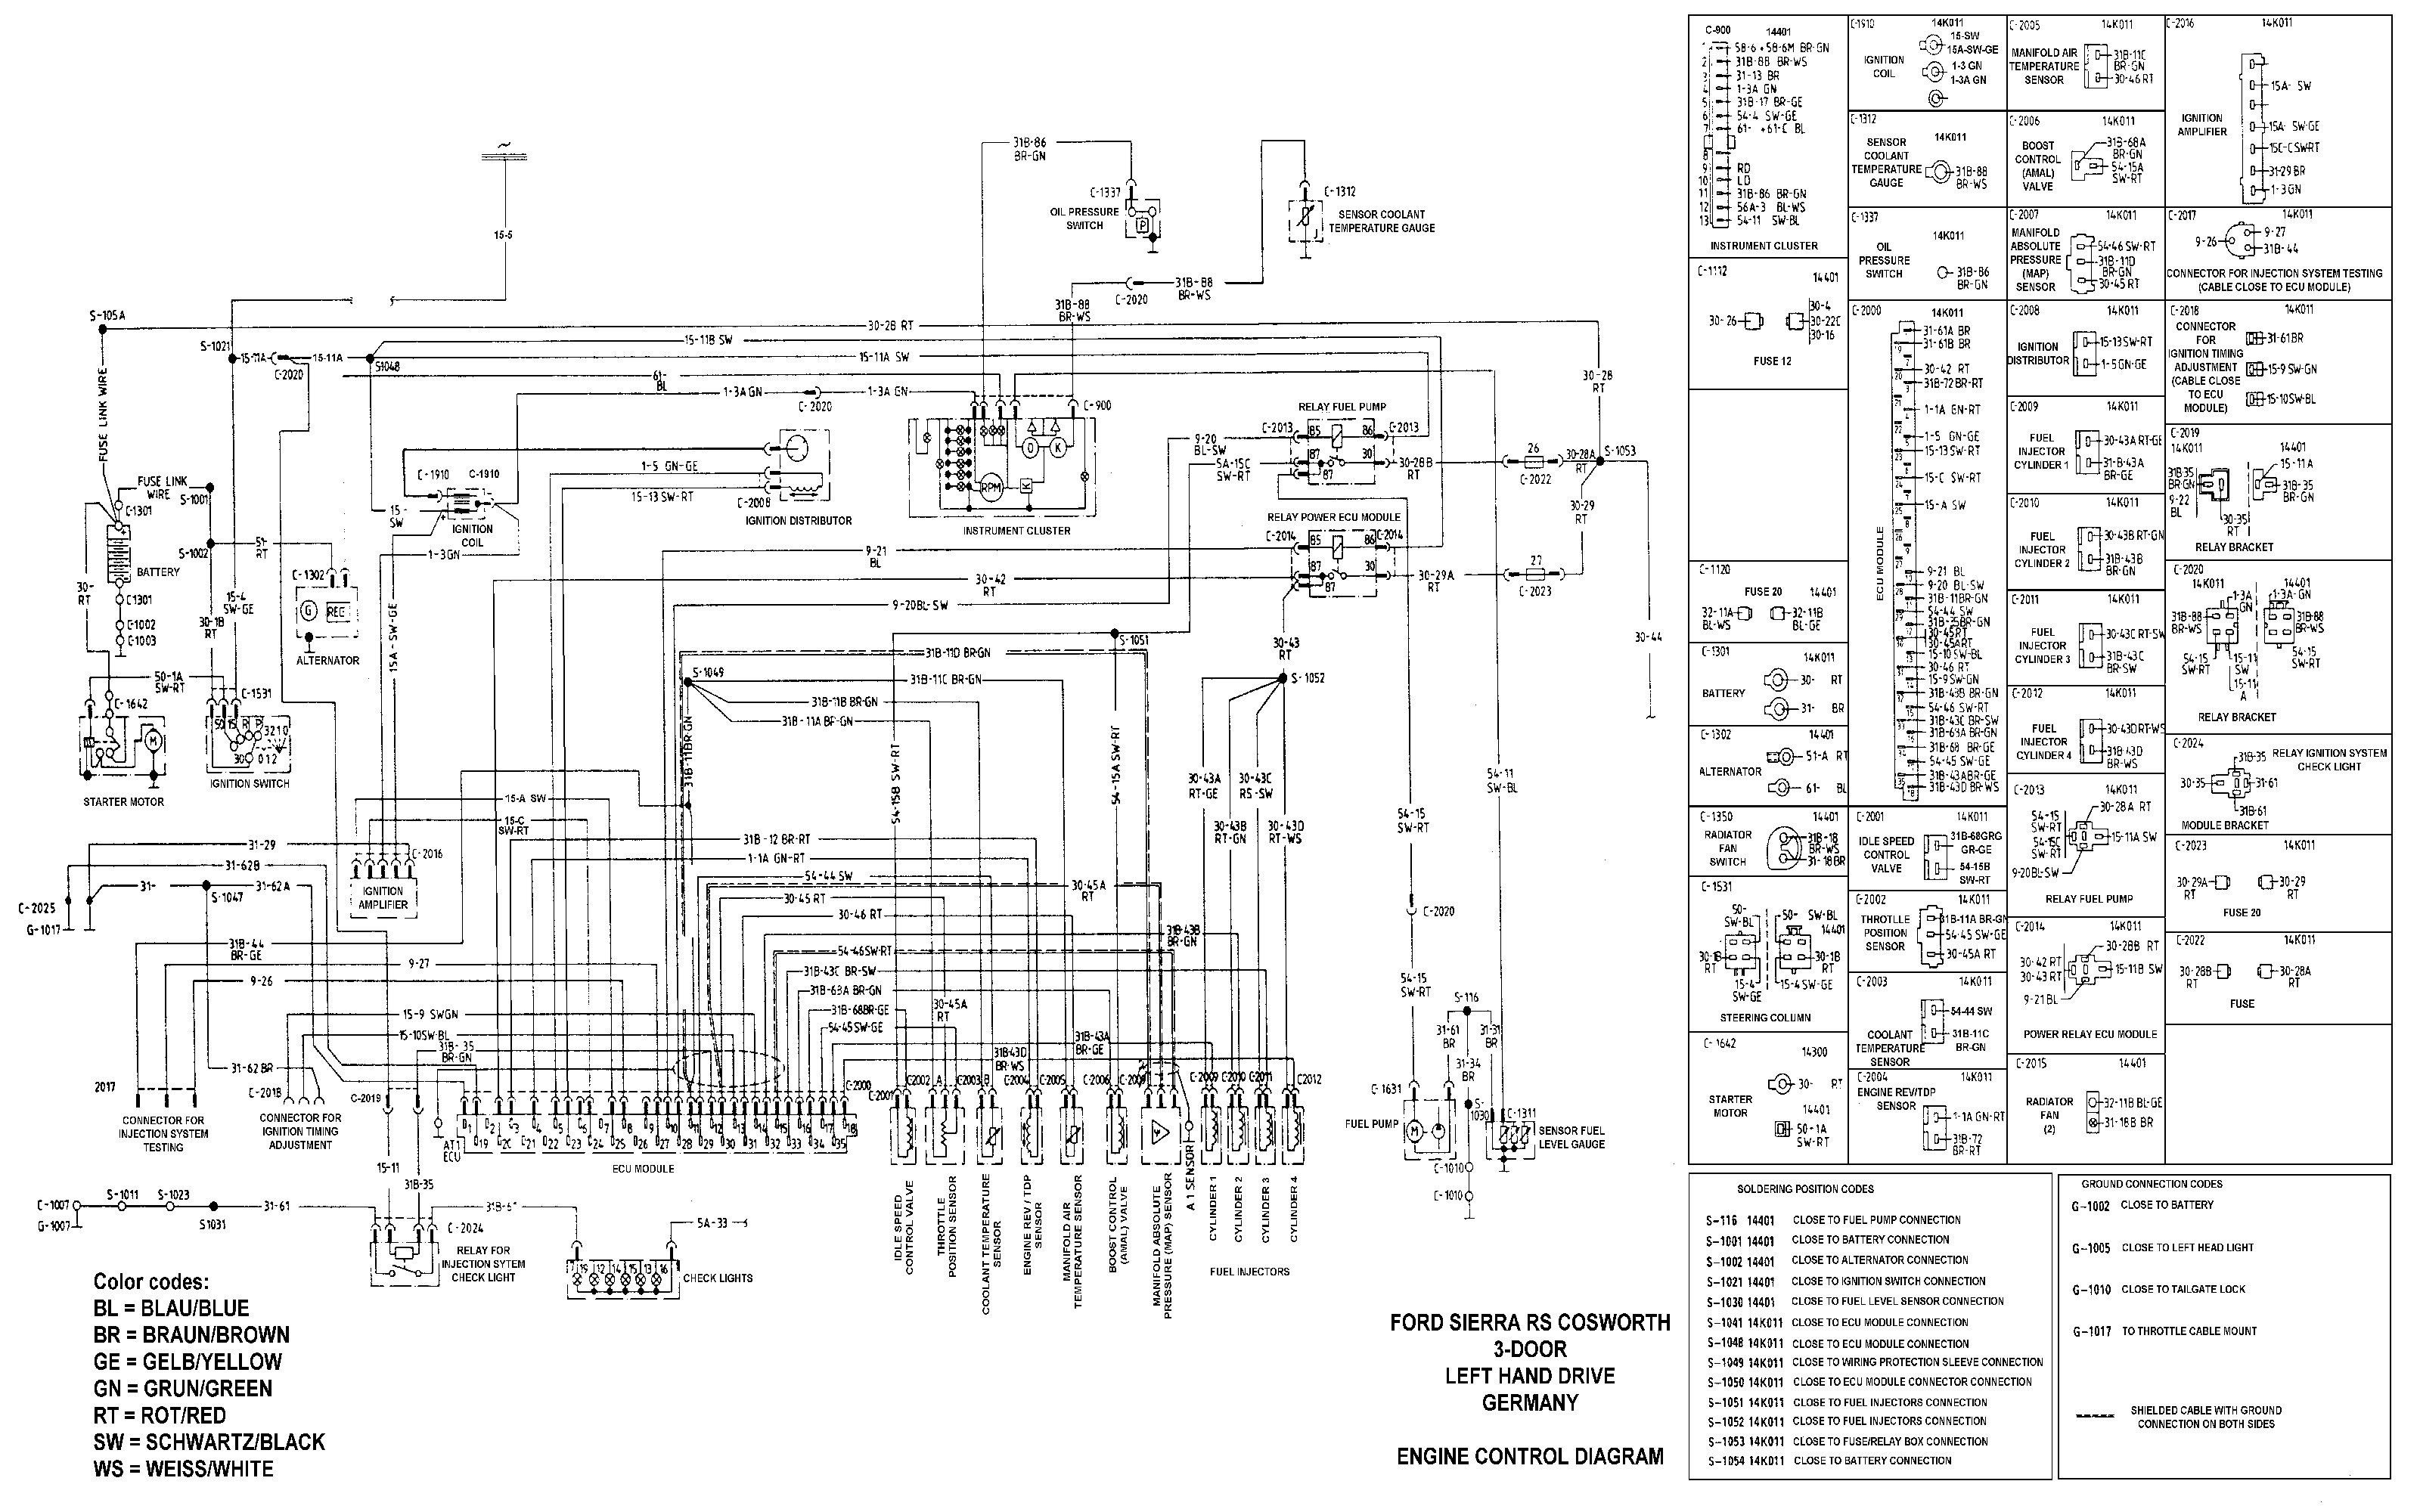 New Wiring Diagram For An Electric Furnace Diagram Unique Cars Car Stereo